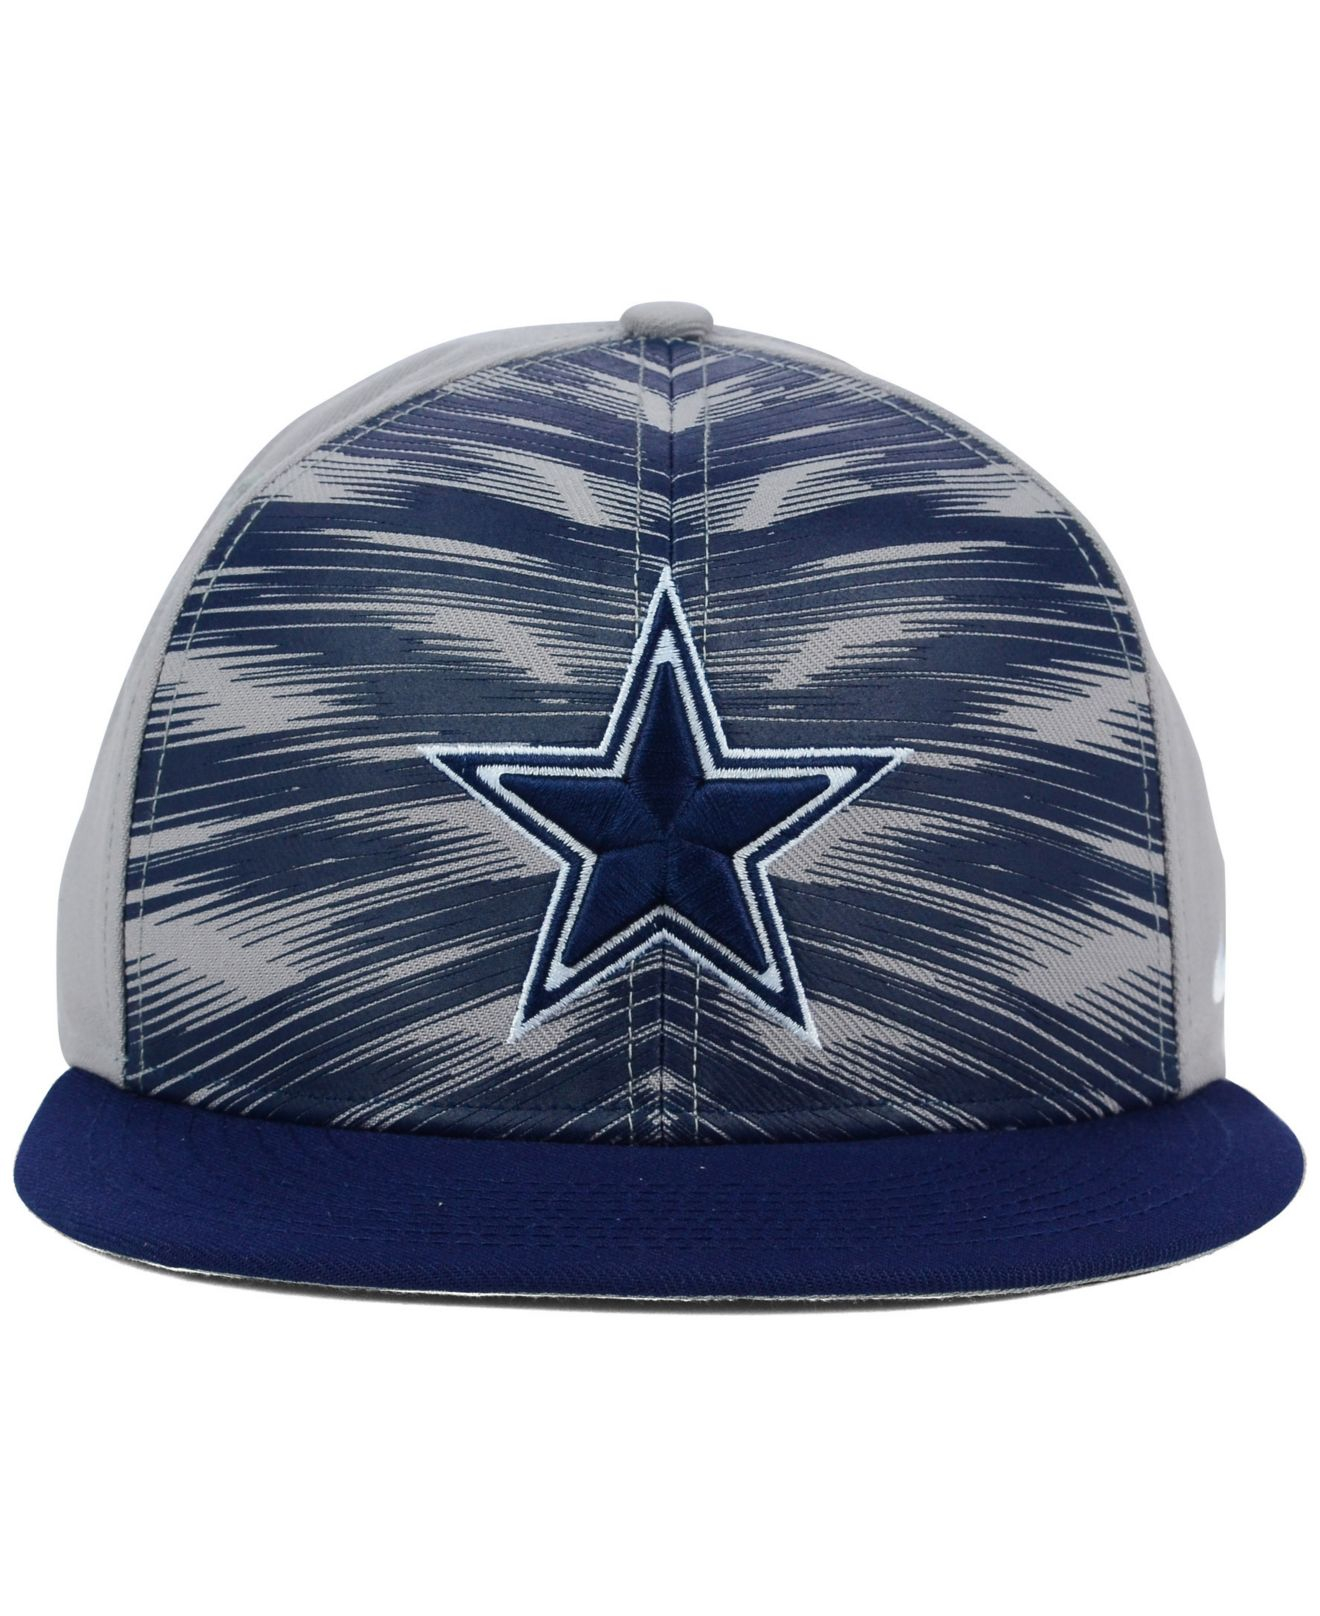 016f2533771 ... sideline bobble hat d0580 910da  official lyst nike dallas cowboys  gameday true cap in gray for men 13977 7291c